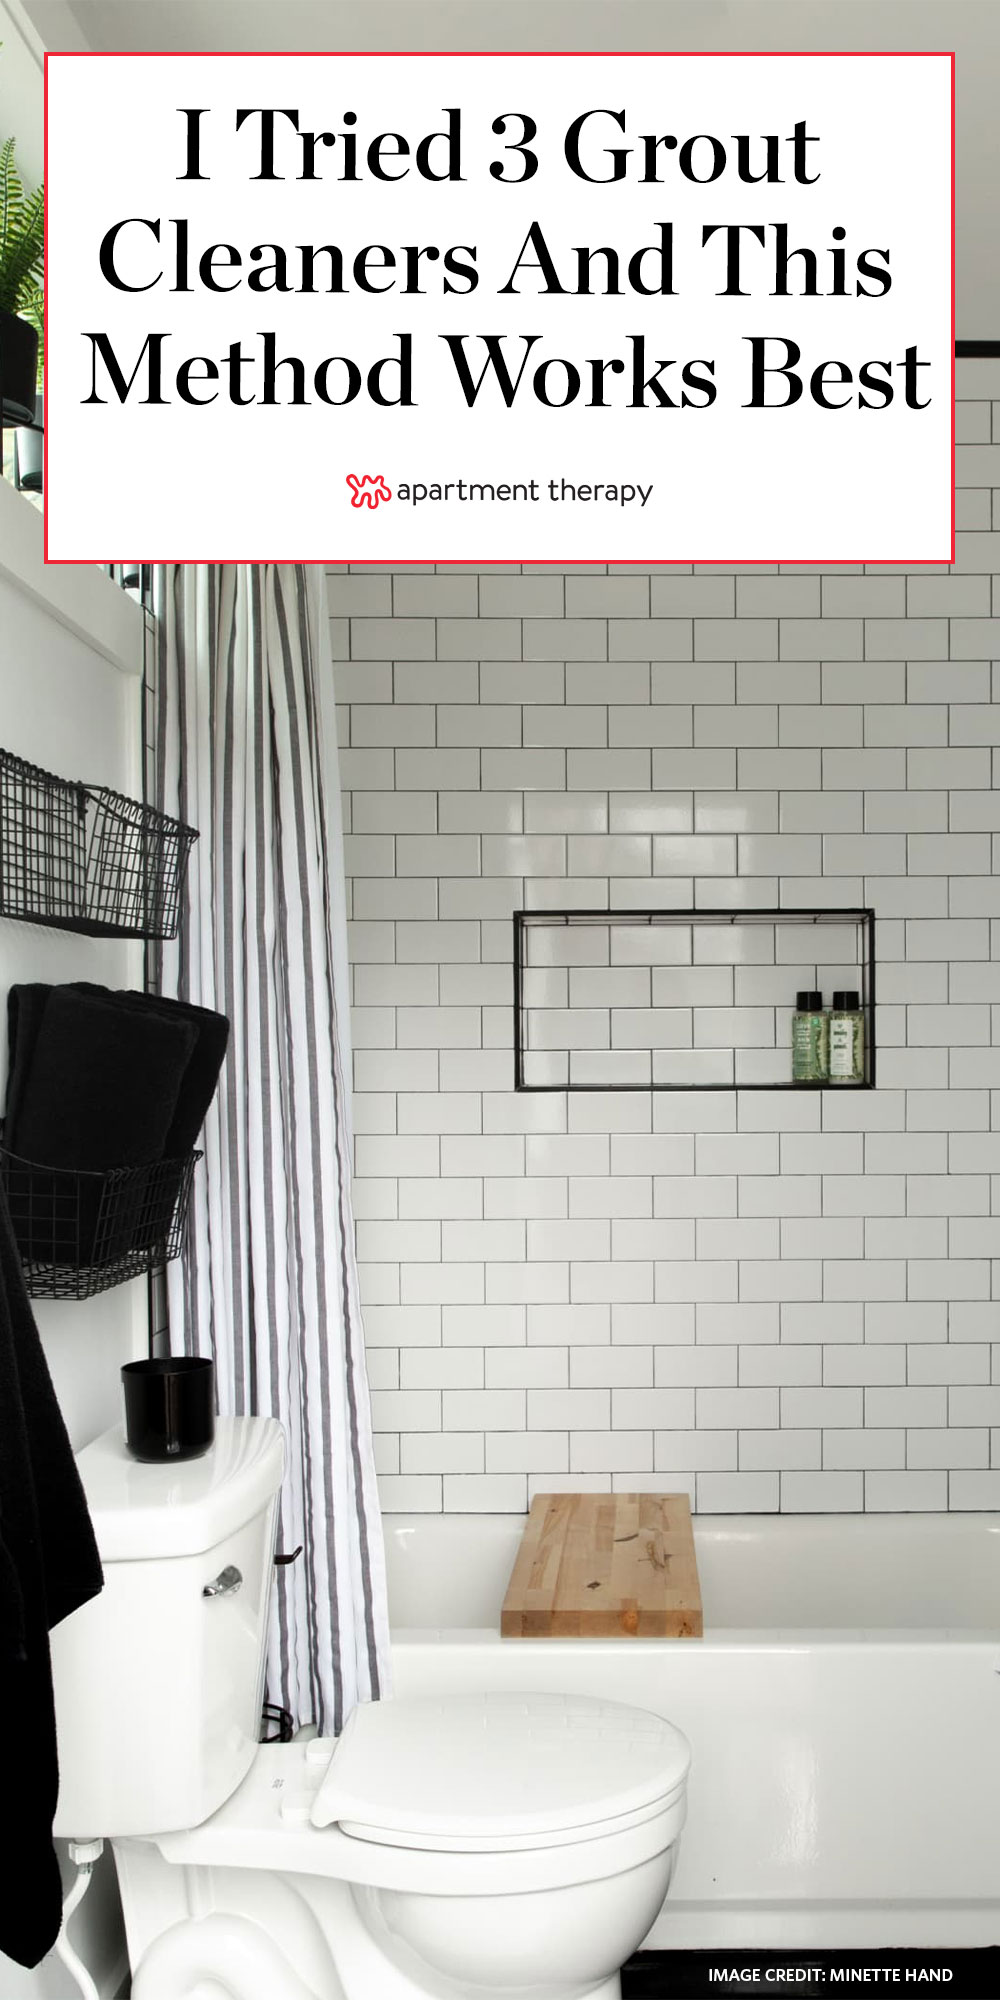 I Tried 3 Diy Grout Cleaners And One Of Them Blew Me Away Apartment Therapy